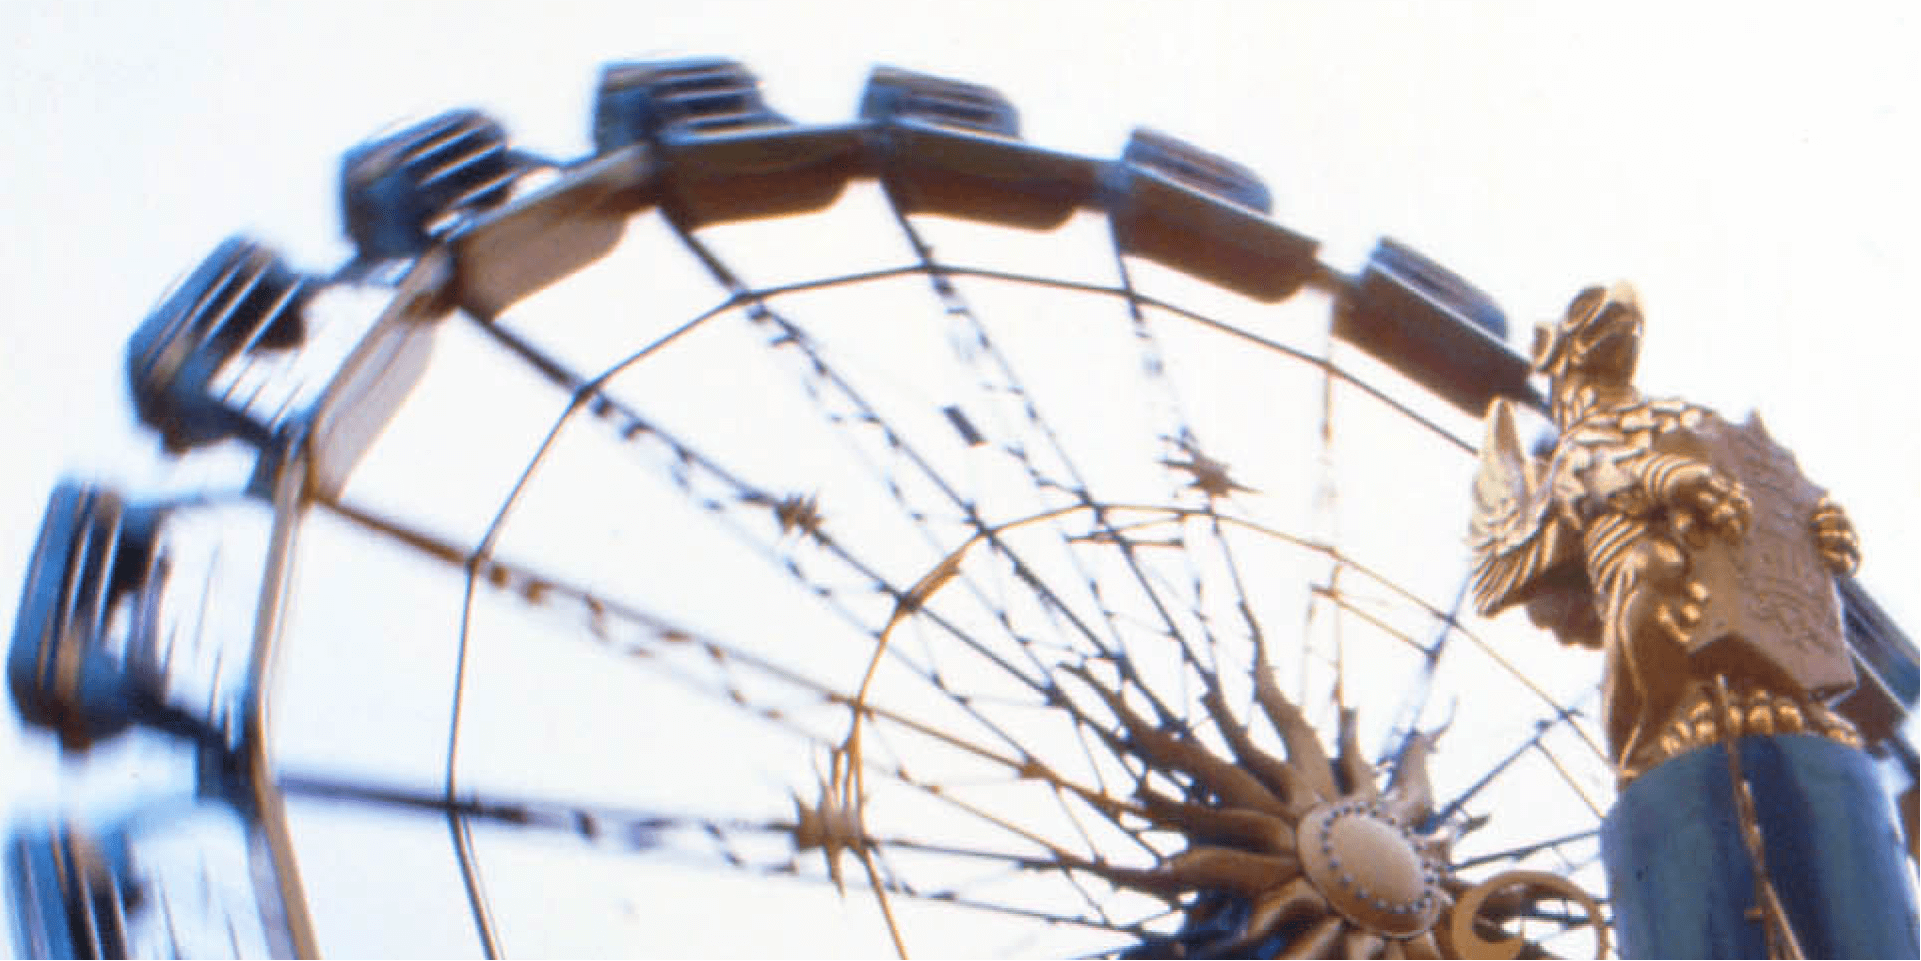 Zodiac Spinning Ride